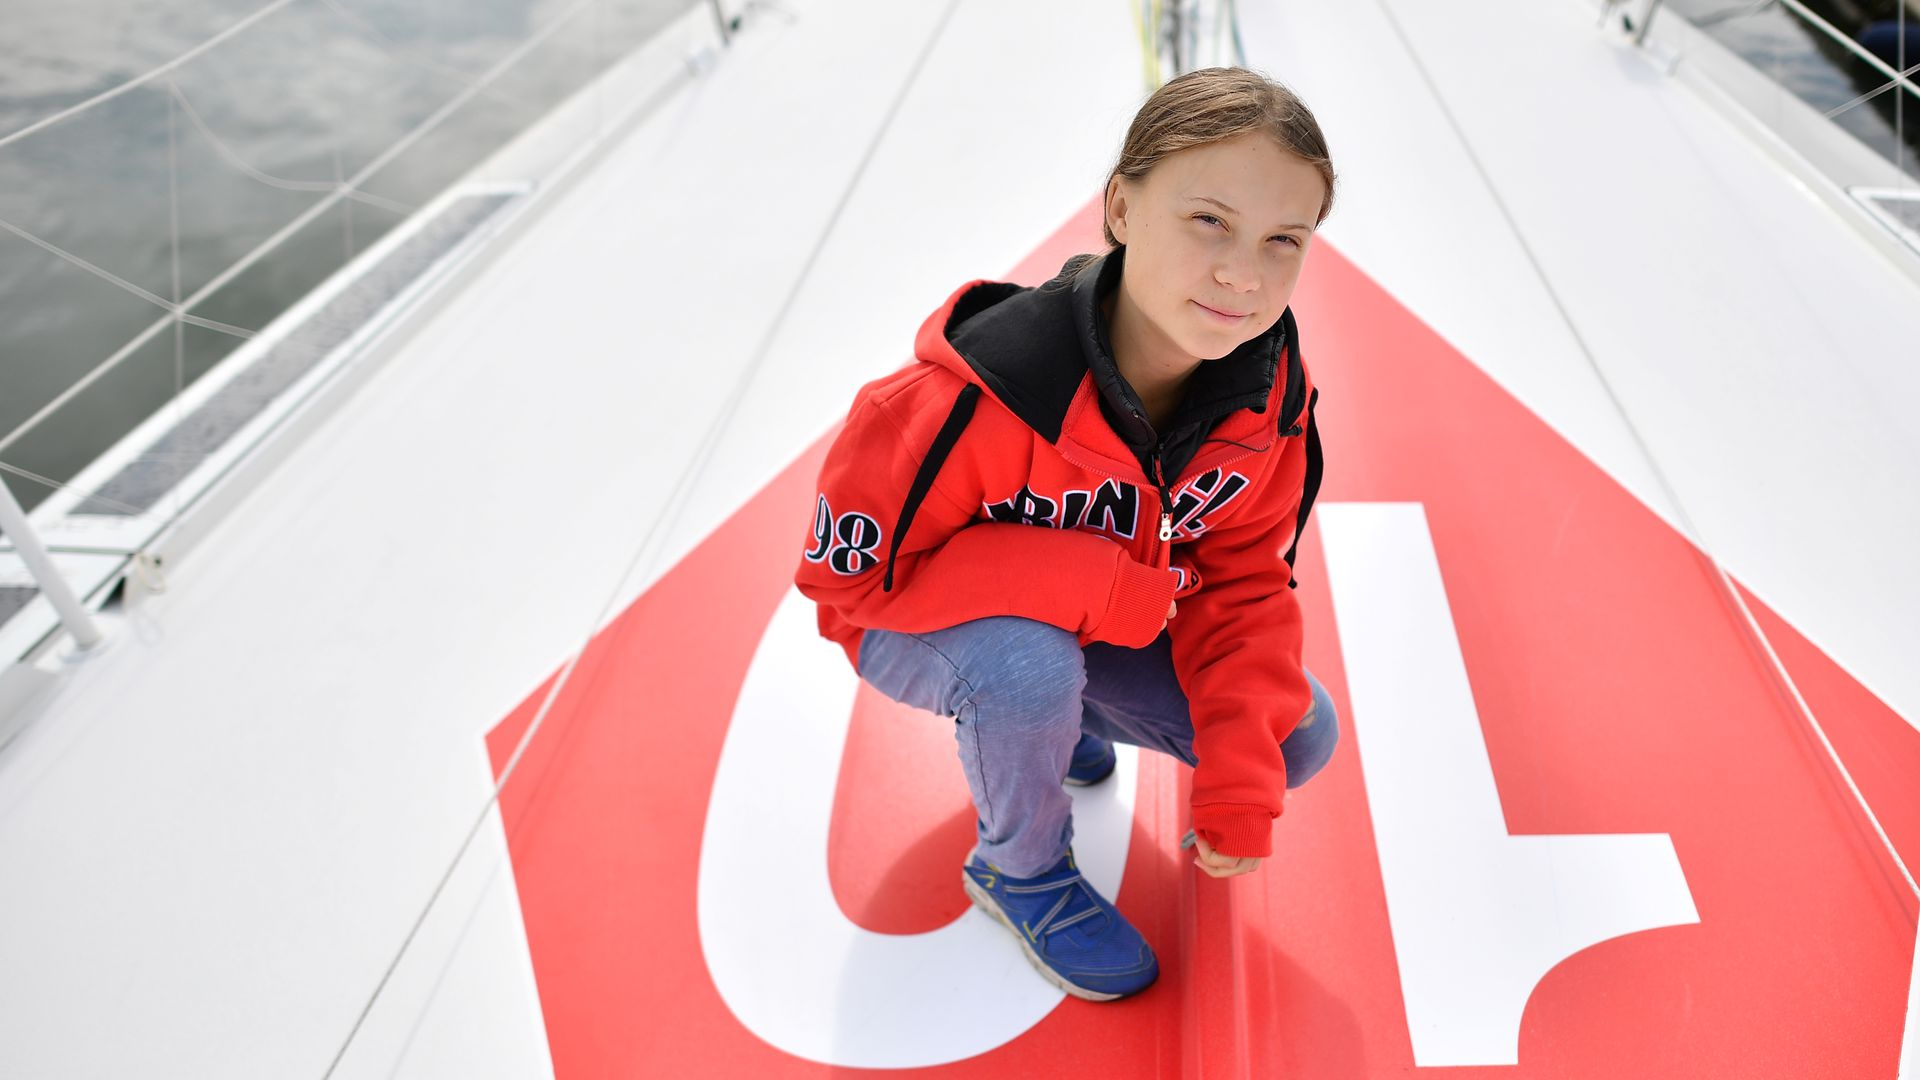 Swedish climate activist Greta Thunberg poses for a photograph during an inteview with AFP onboard the Malizia II sailing yacht at the Mayflower Marina in Plymouth, southwest England, on August 13